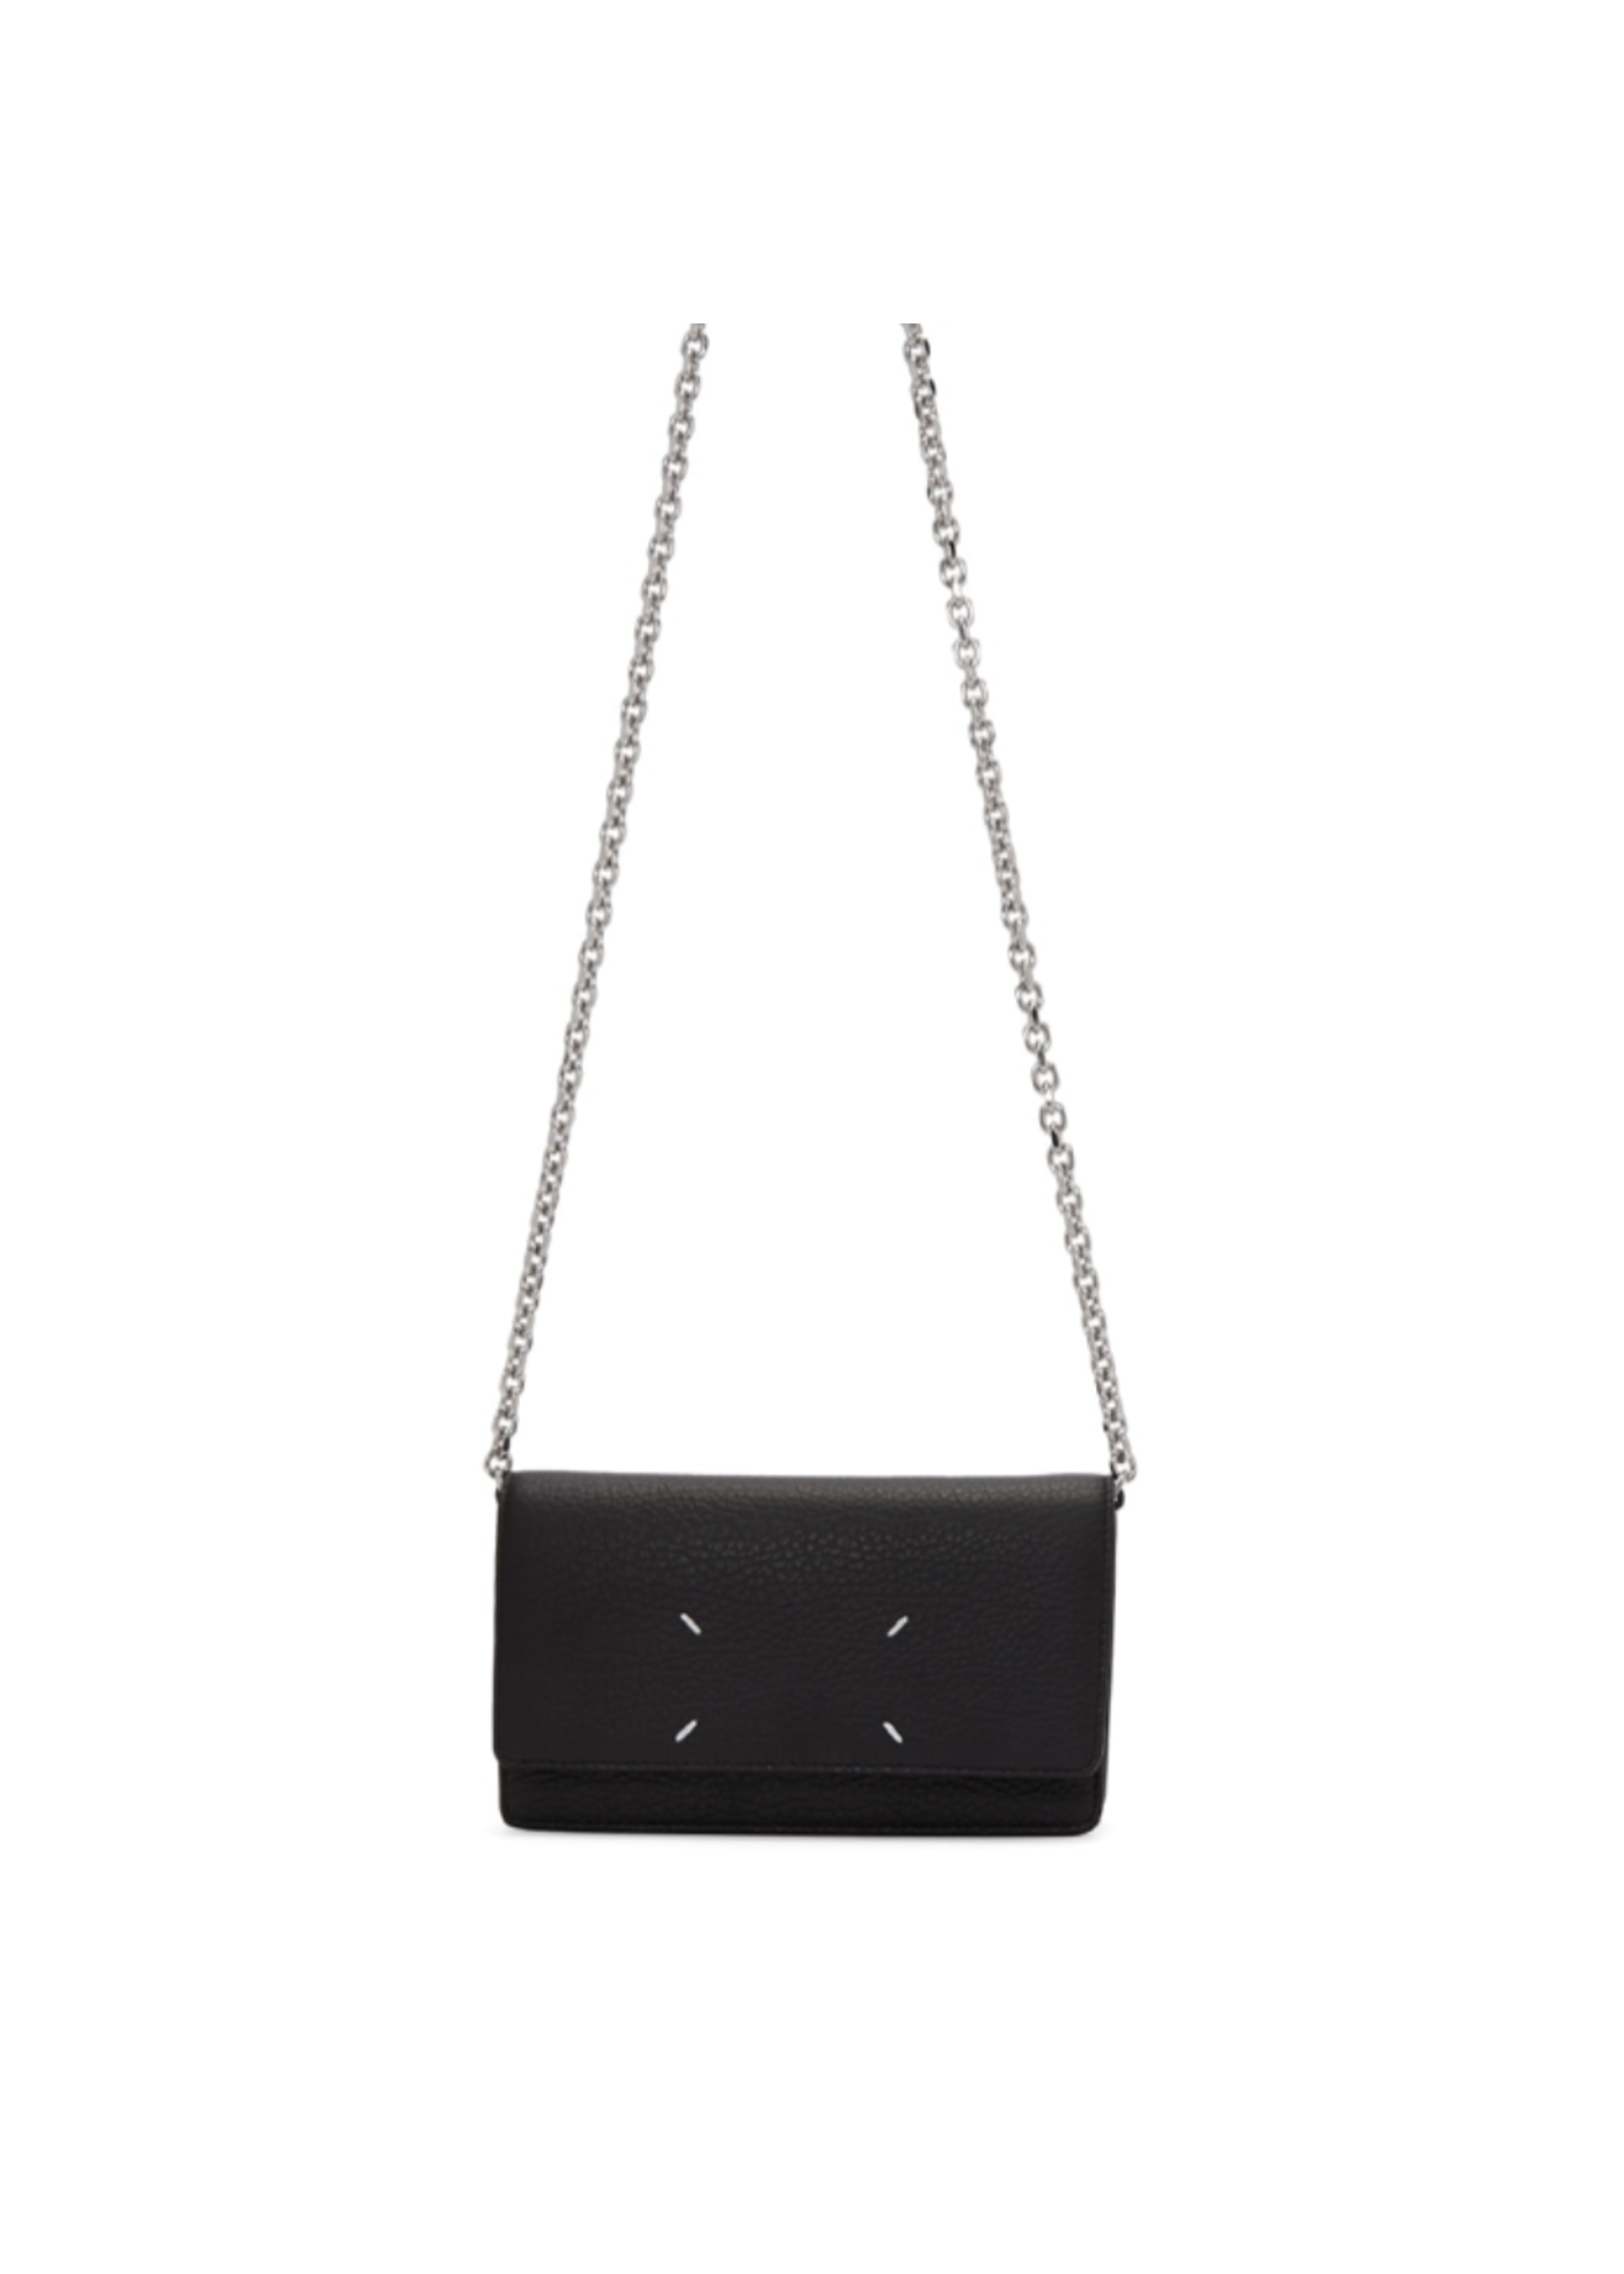 Maison Margiela Large Chain Wallet in Black